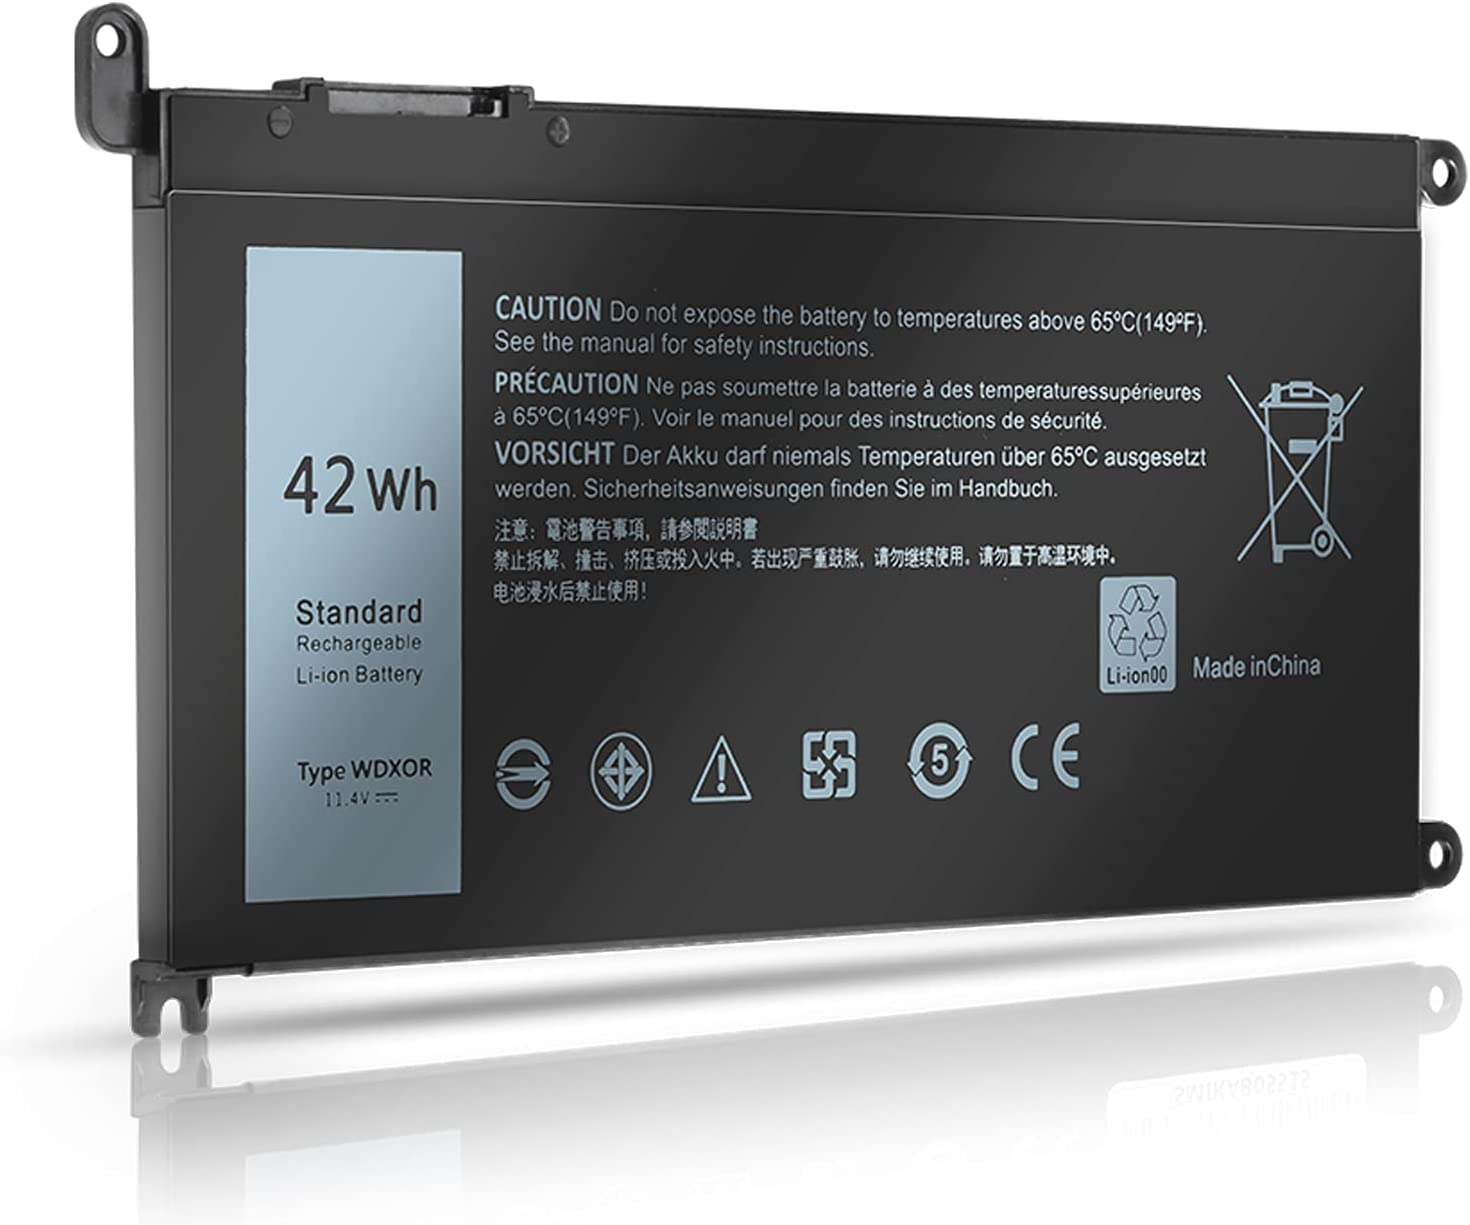 WDX0R Laptop Battery Replace for Dell Inspiron 17 5765 5767 5770 15 5565 5567 5568 5578 7560 7570 7579 7569 13 5368 5378 5379 7368 7378 fit 3CRH3 T2JX4 FC92N CYMGM Notebook [42Wh/11.4V]